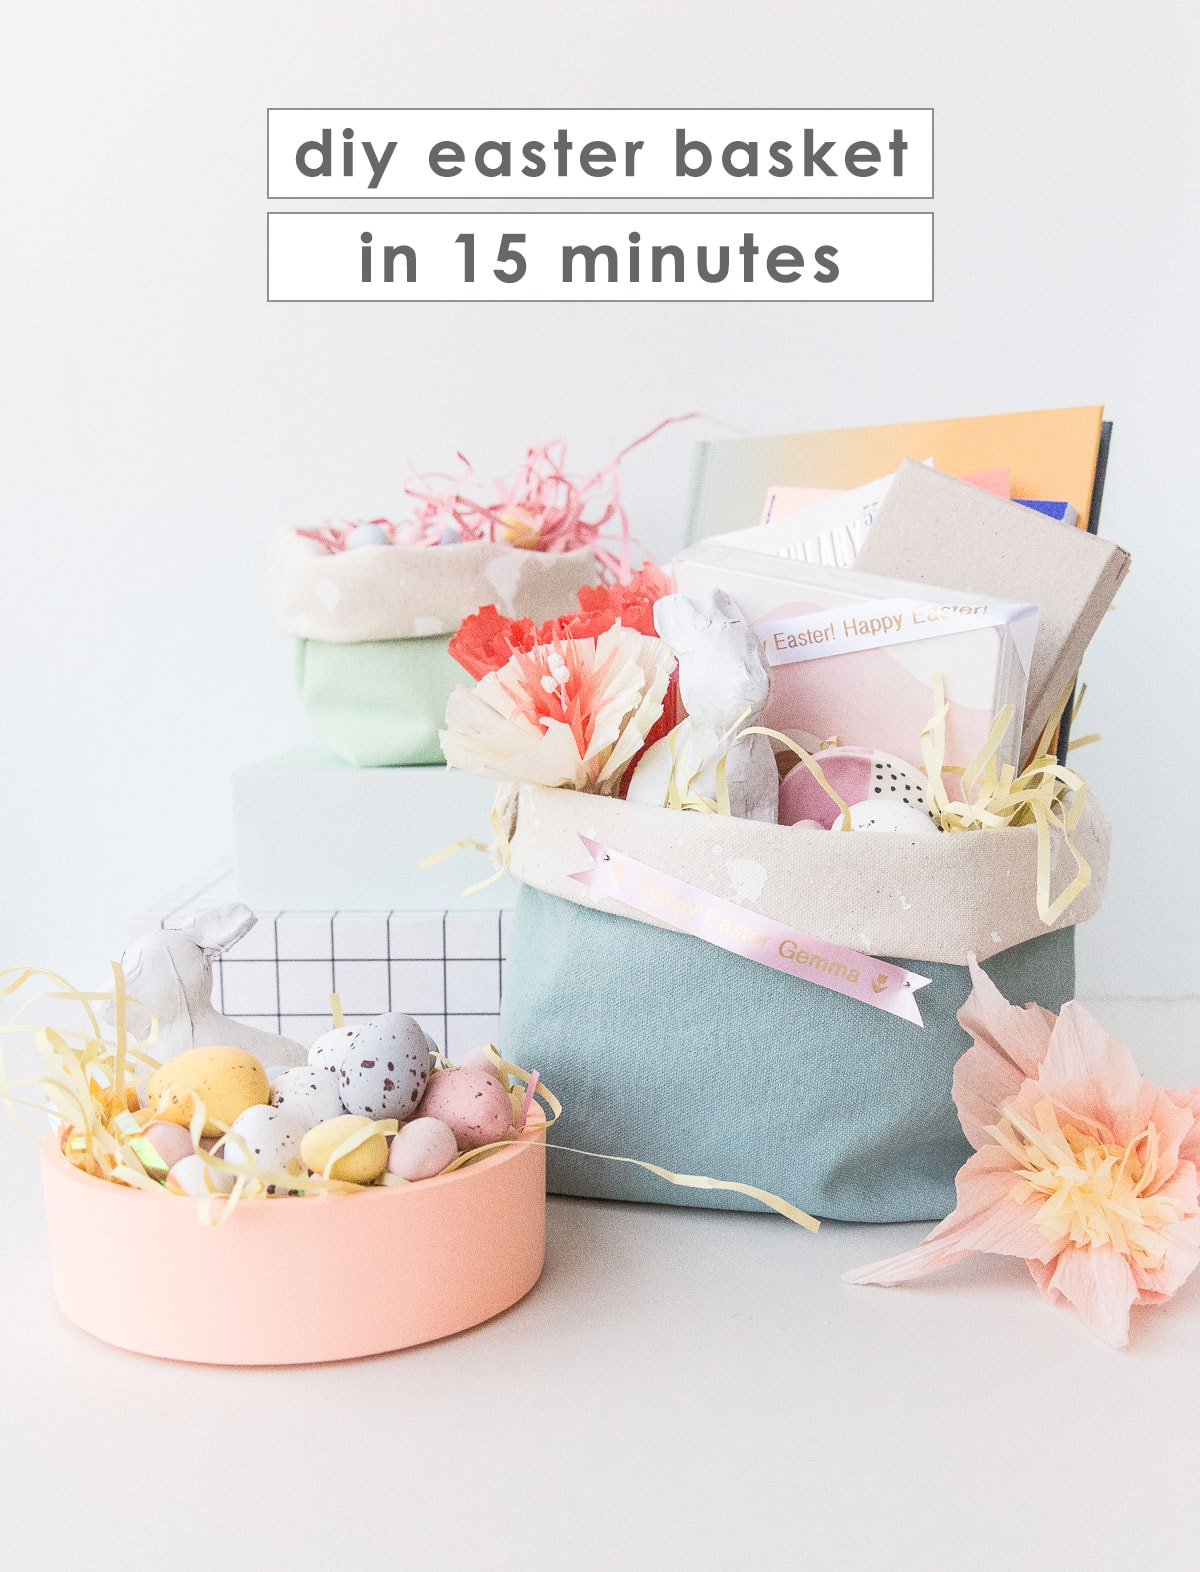 Colorful homemade Easter baskets with candy and gifts inside.